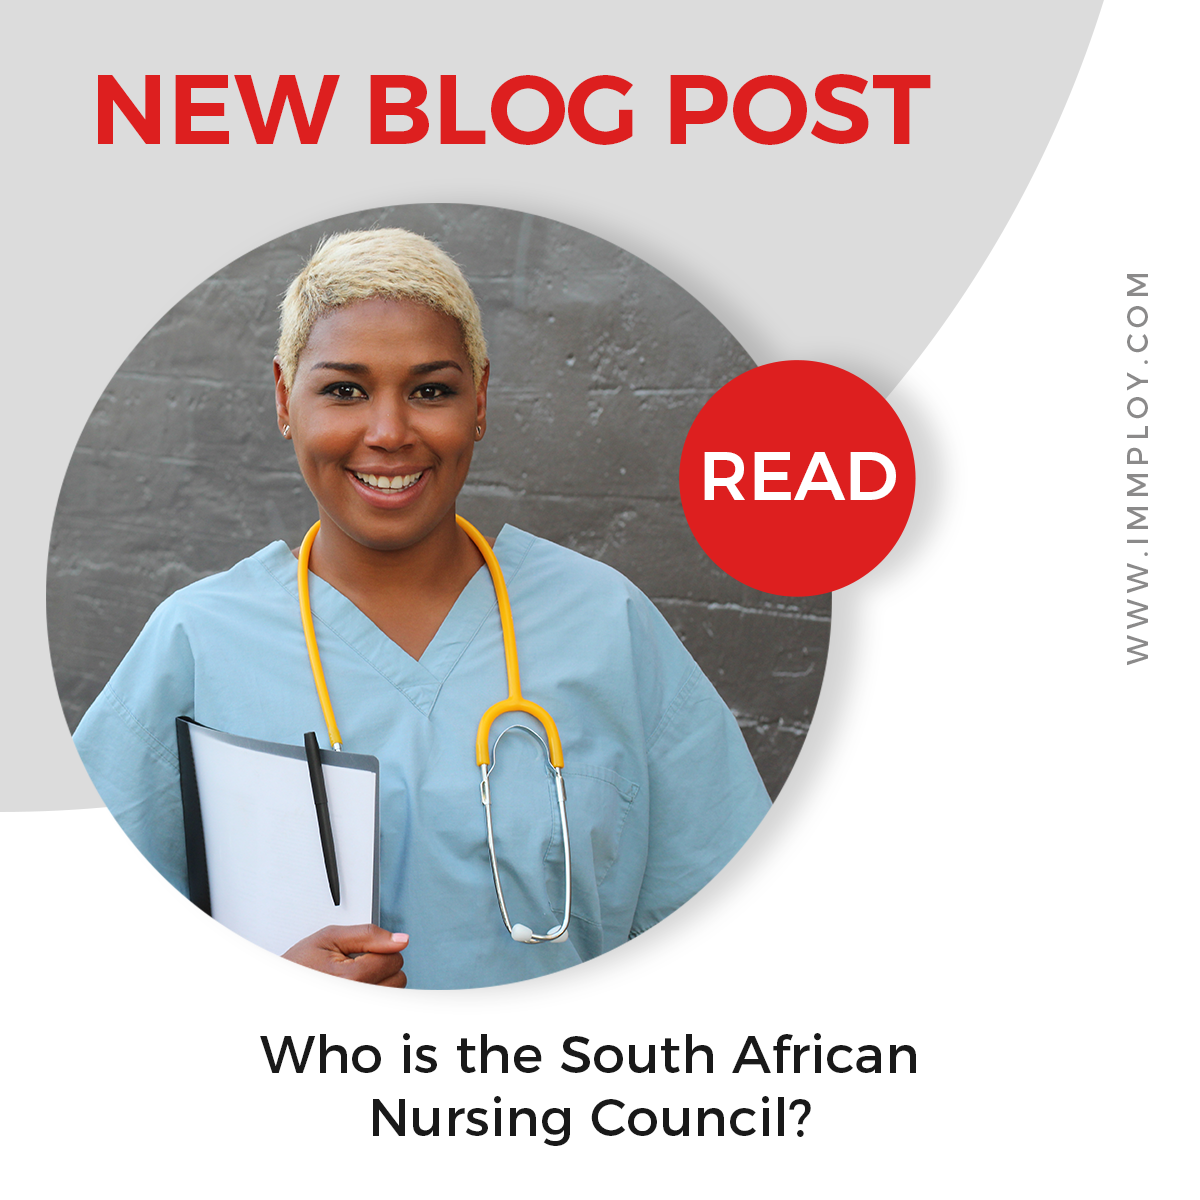 Who is the South African Nursing Council?